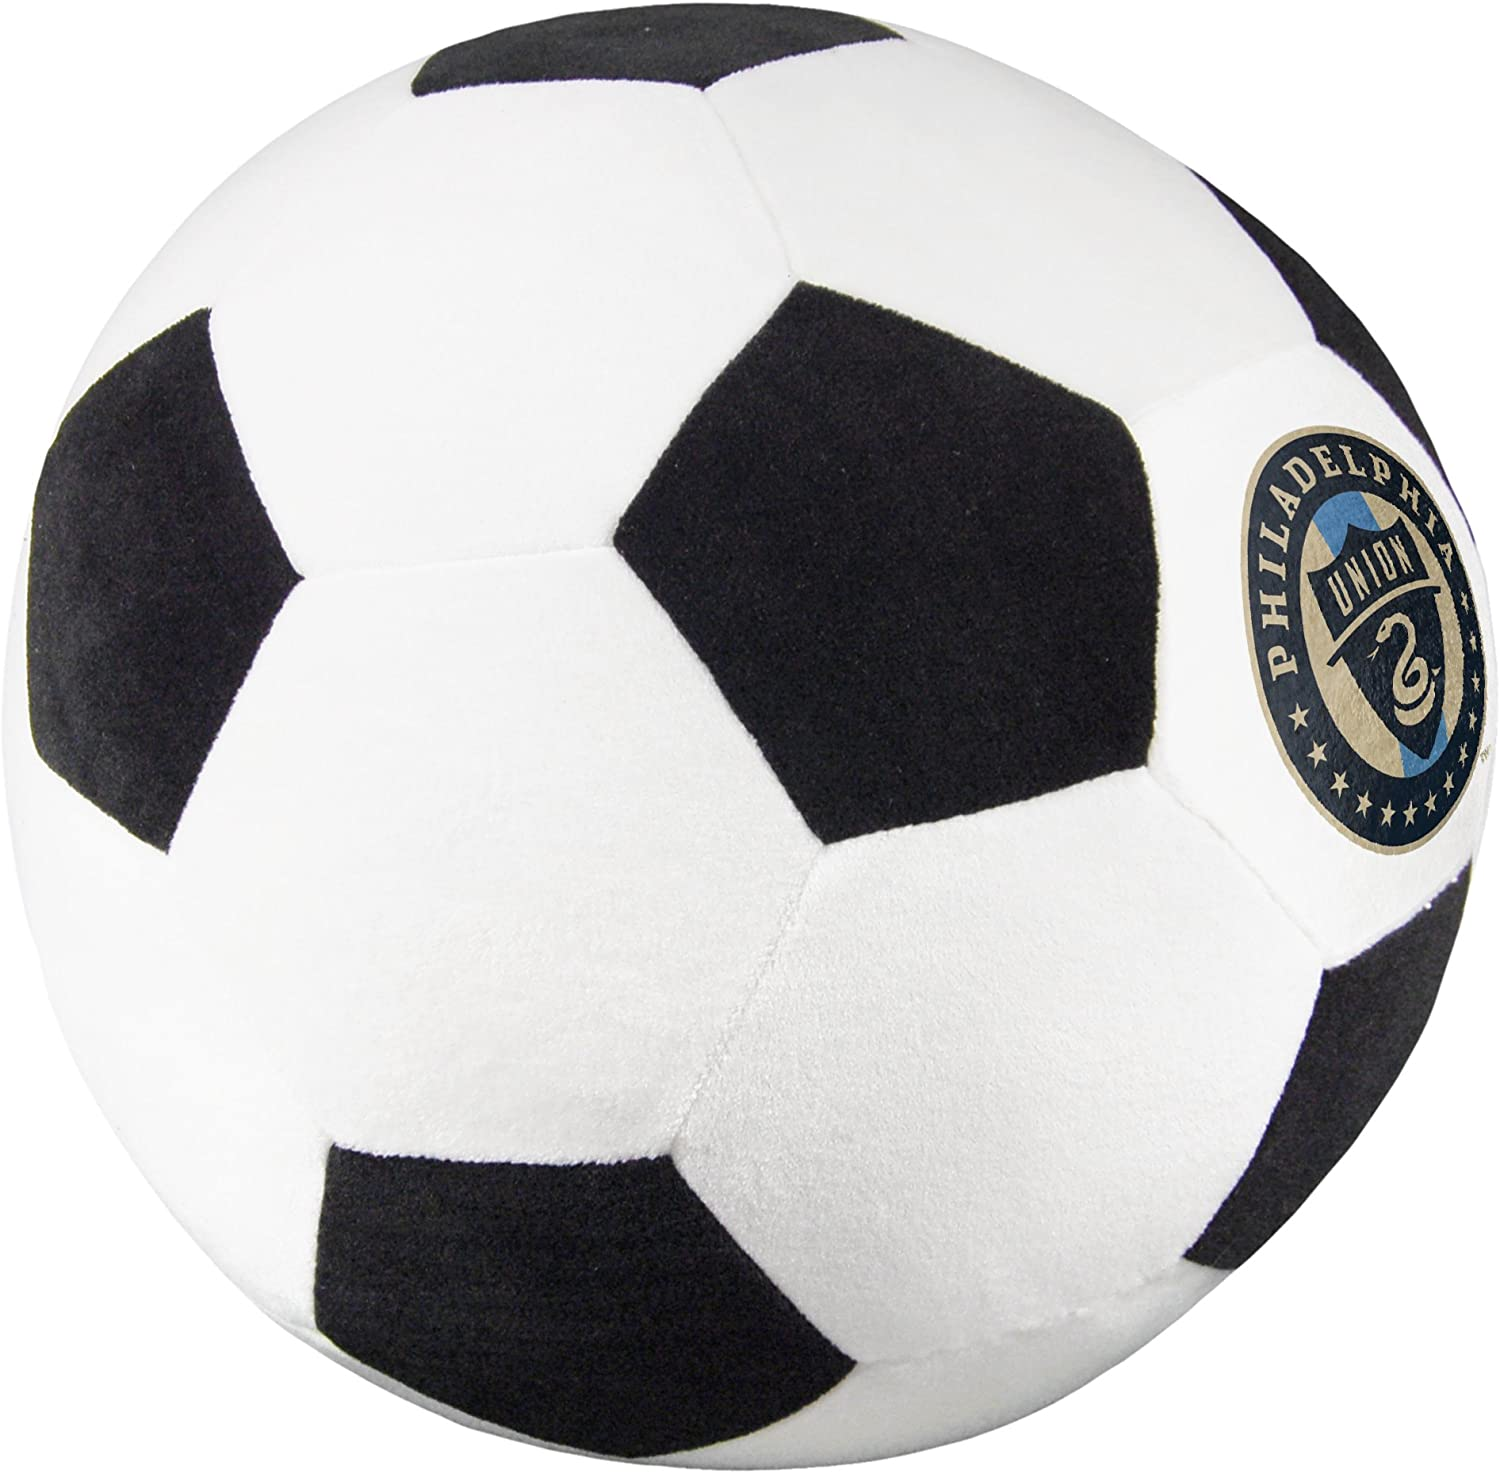 The Northwest Company Officially Licensed MLS Cloud Pillow 11